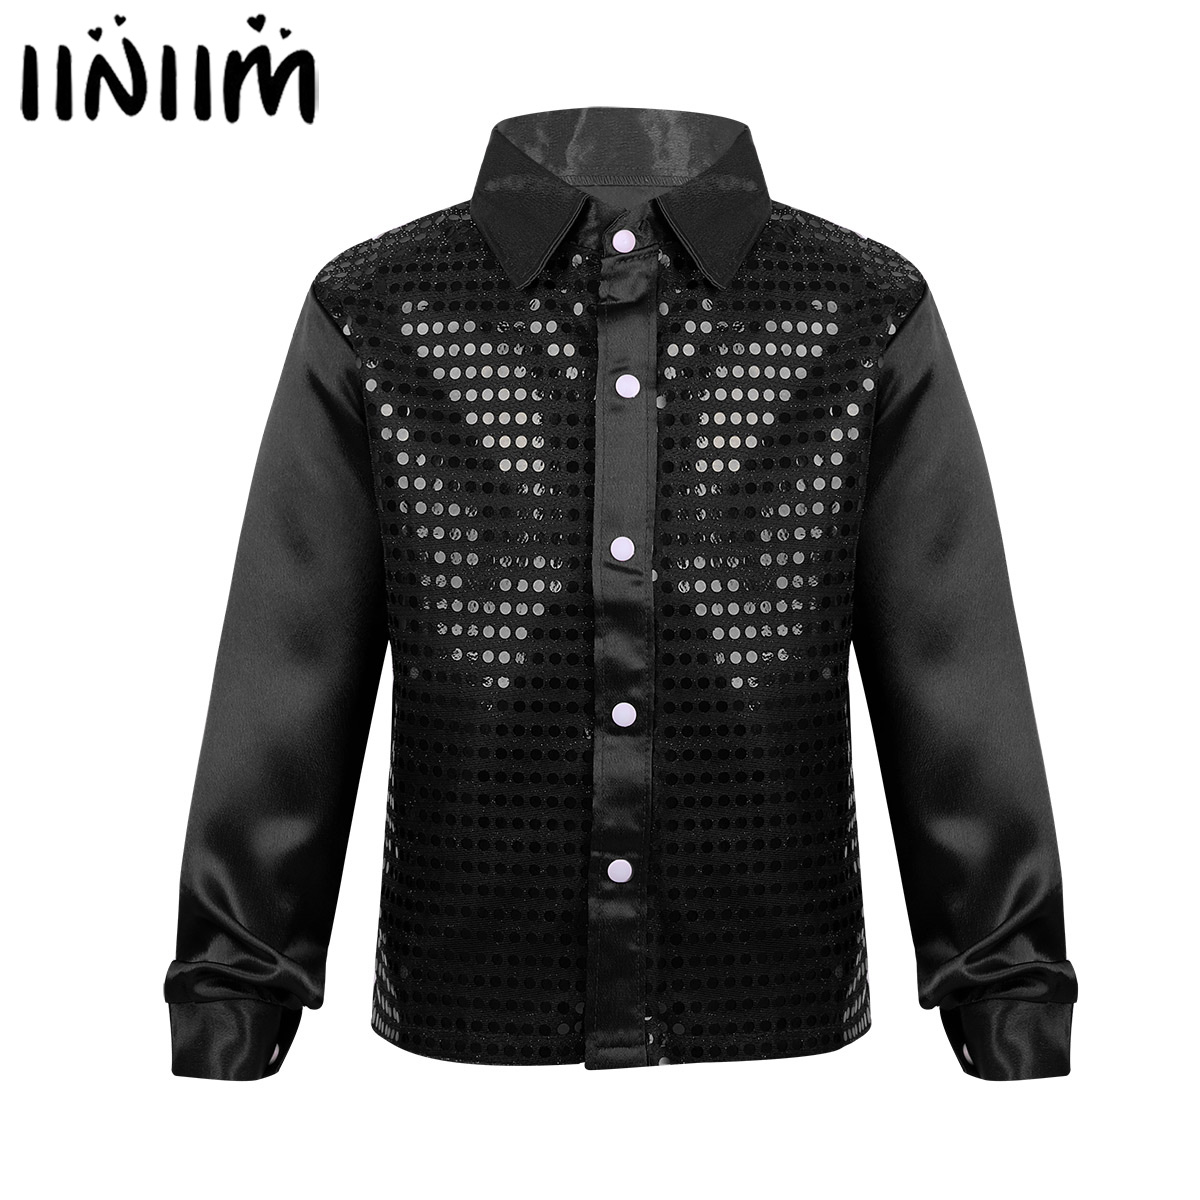 iiniim Kids Boys Jazz Glittery Sequined Dancewear Spread Collar Shirt for Choir Jazz Lyrical Dance Costumes for Weeding